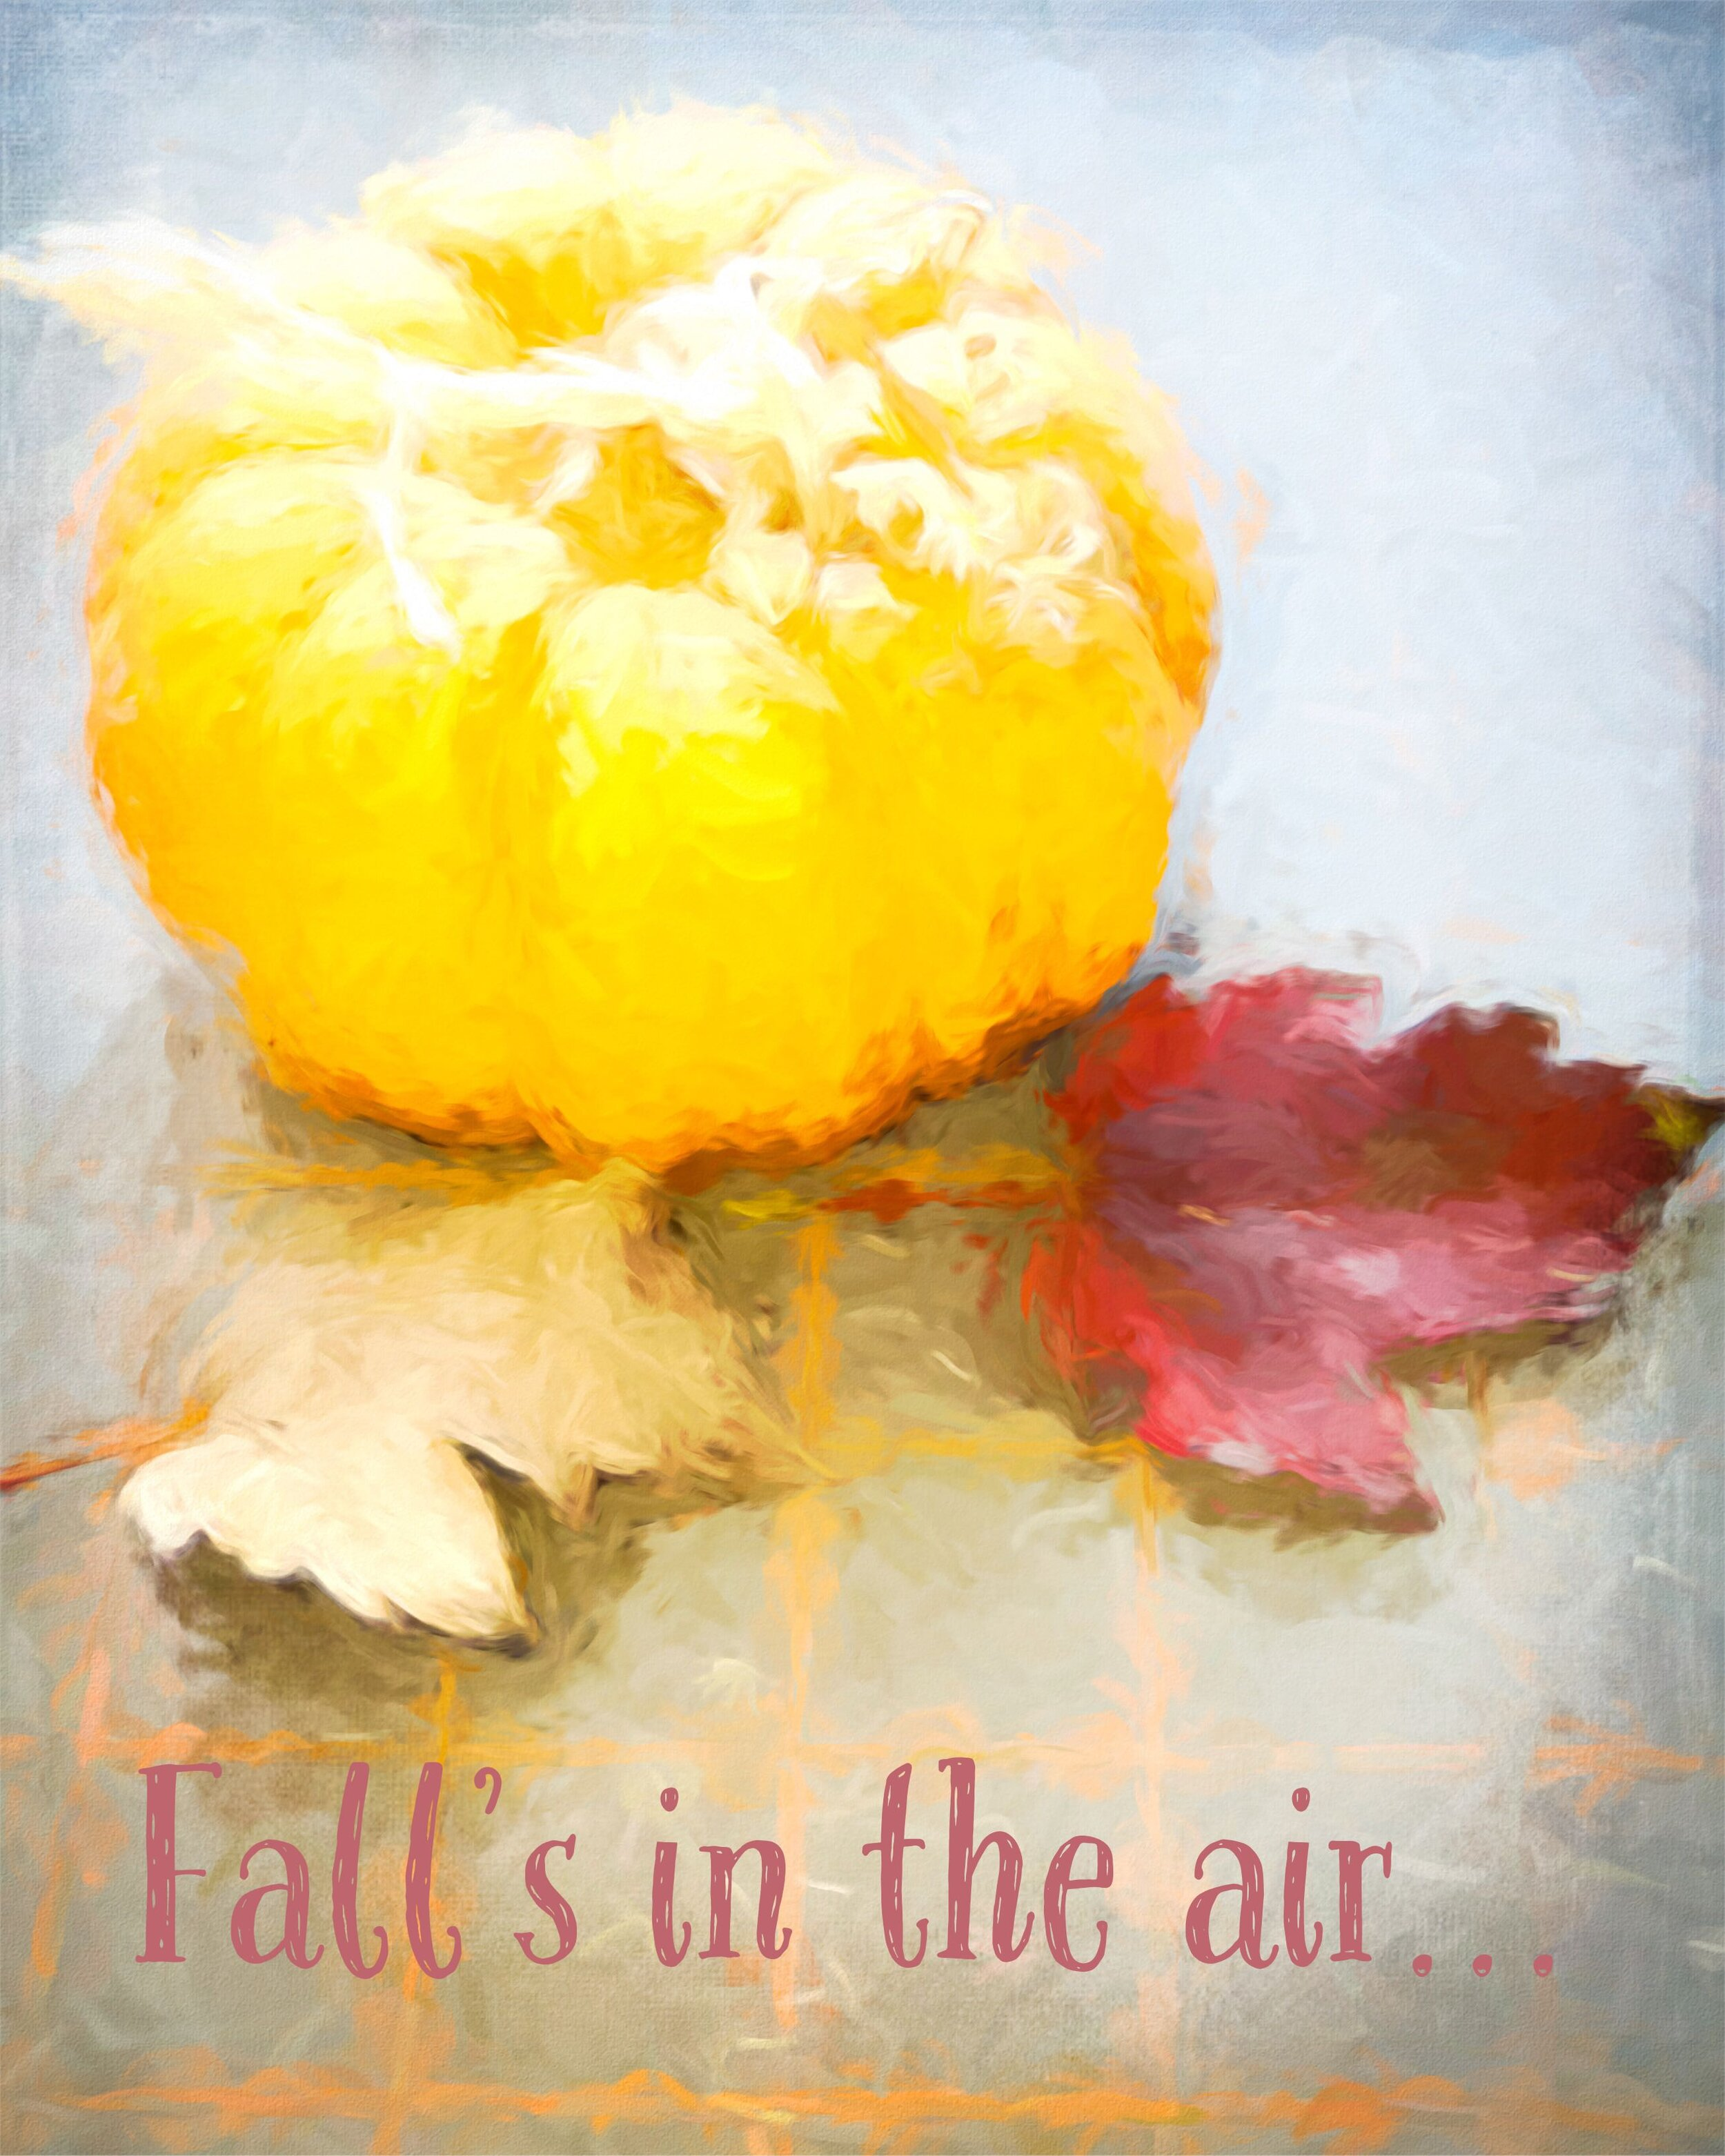 Fall's in the air…